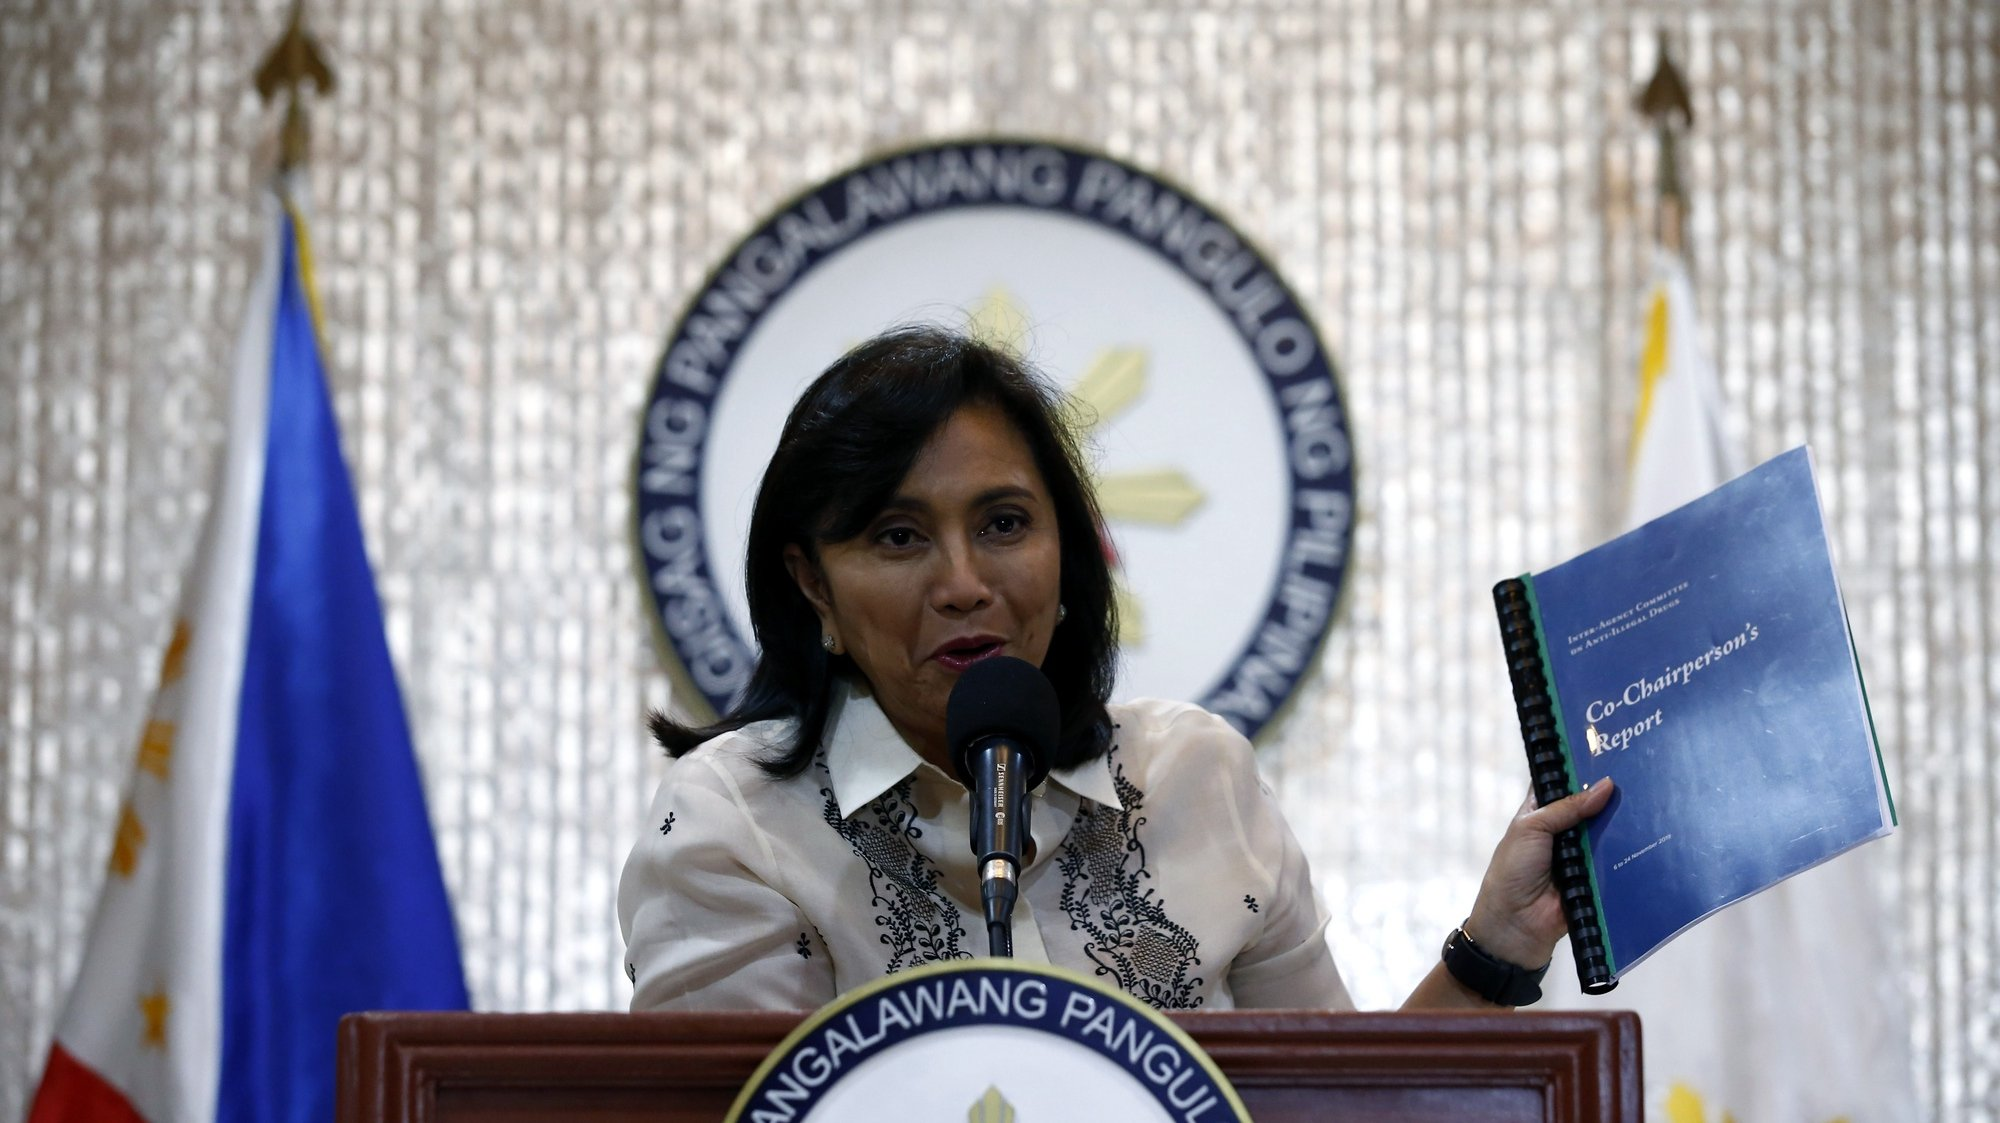 epa08074764 Philippine Vice President Leni Robredo shows a copy of her report, which was compiled from her short stint as co-chair of the country's Inter-Agency Committee on Anti-Illegal Drugs, at a press conference in Quezon City, Philippines, 16 December 2019. Robredo, who was barely a month into the position of co-chair when President Rodrigo Duterte removed her, deferred releasing details of her report on the country's illegal drugs situation and instead called for unity in helping people affected by the 6.9-magnitude earthquake that hit parts of the southern Philippines on 15 December.  EPA/ROLEX DELA PENA